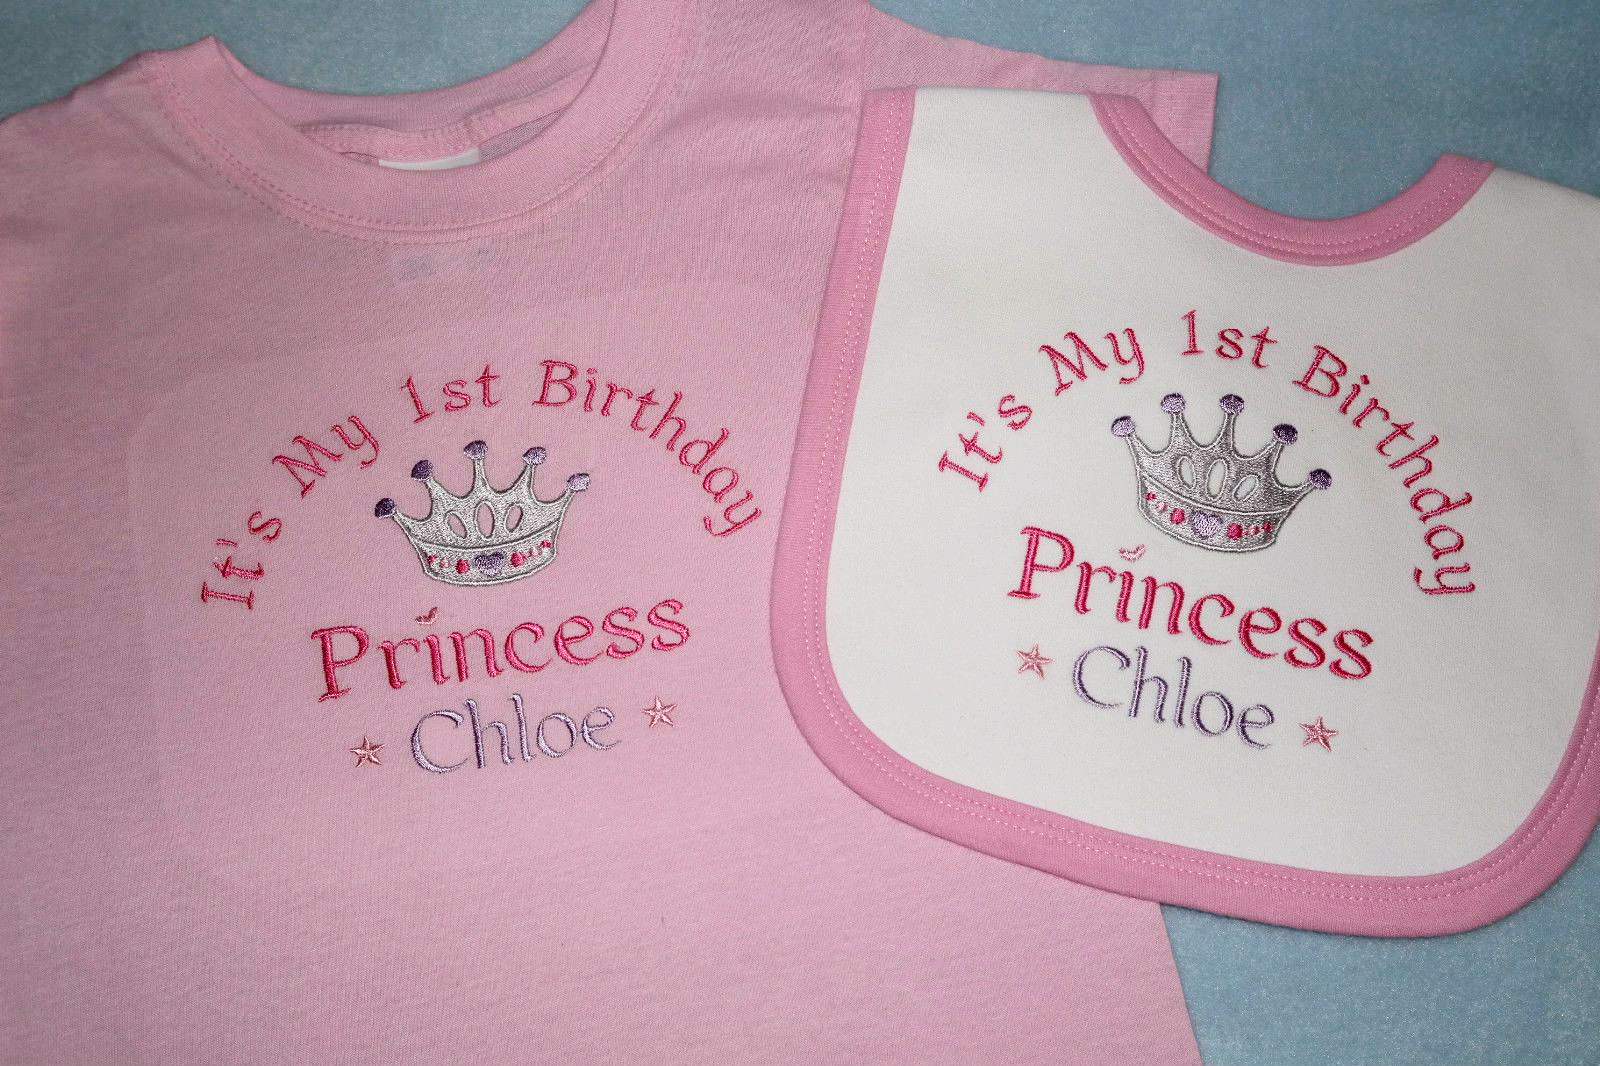 df1f01273d937 Personalised 1st First Birthday t-shirt and bib Prince Princess Twince  Twincess